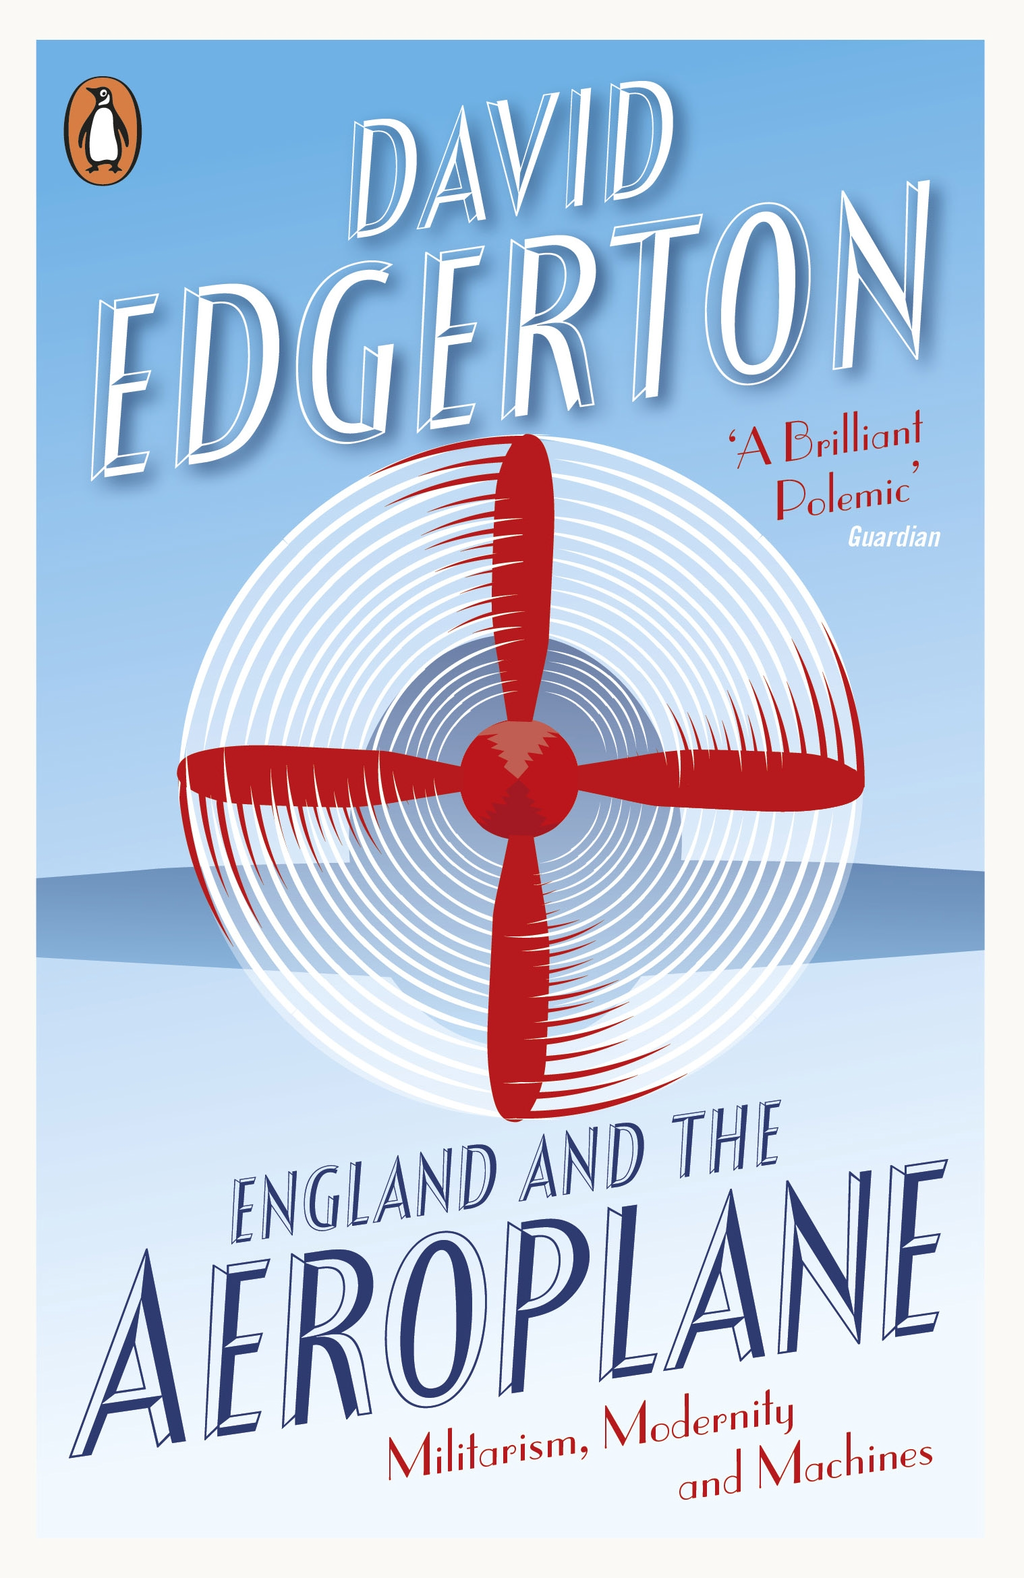 England and the Aeroplane Militarism,  Modernity and Machines